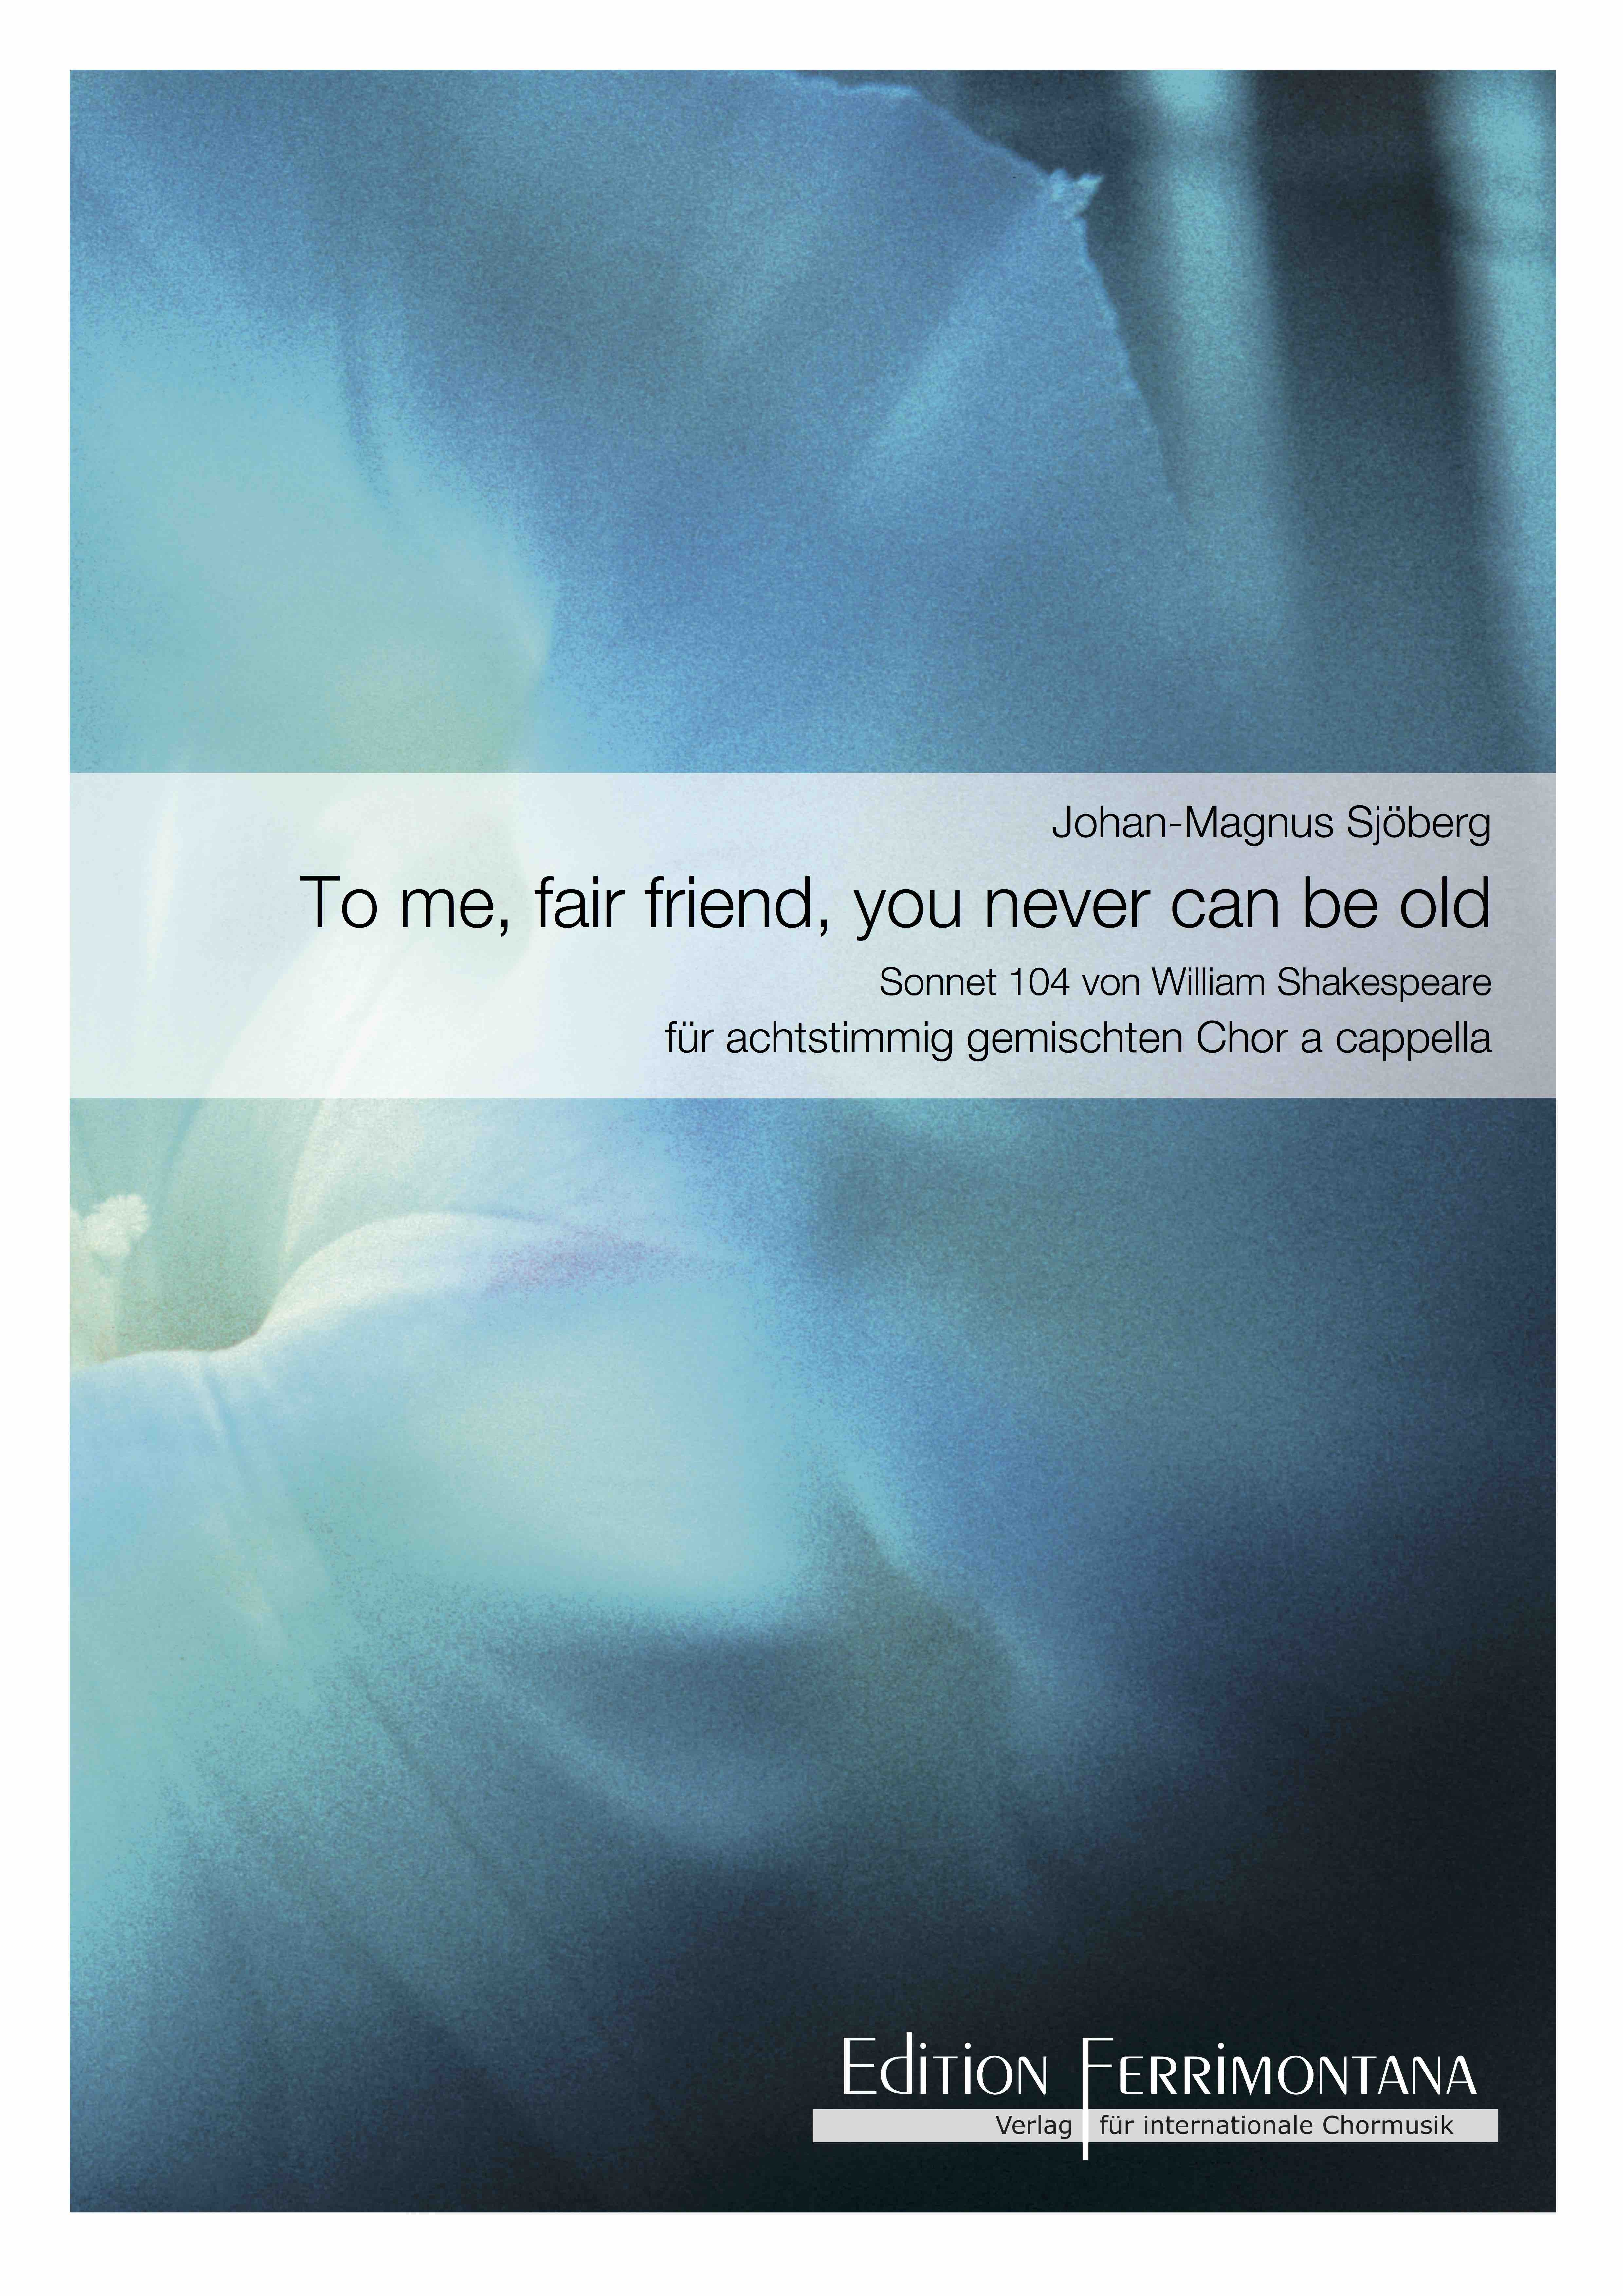 Sjöberg:  To me, fair friend, you never can be old - Sonnet 104